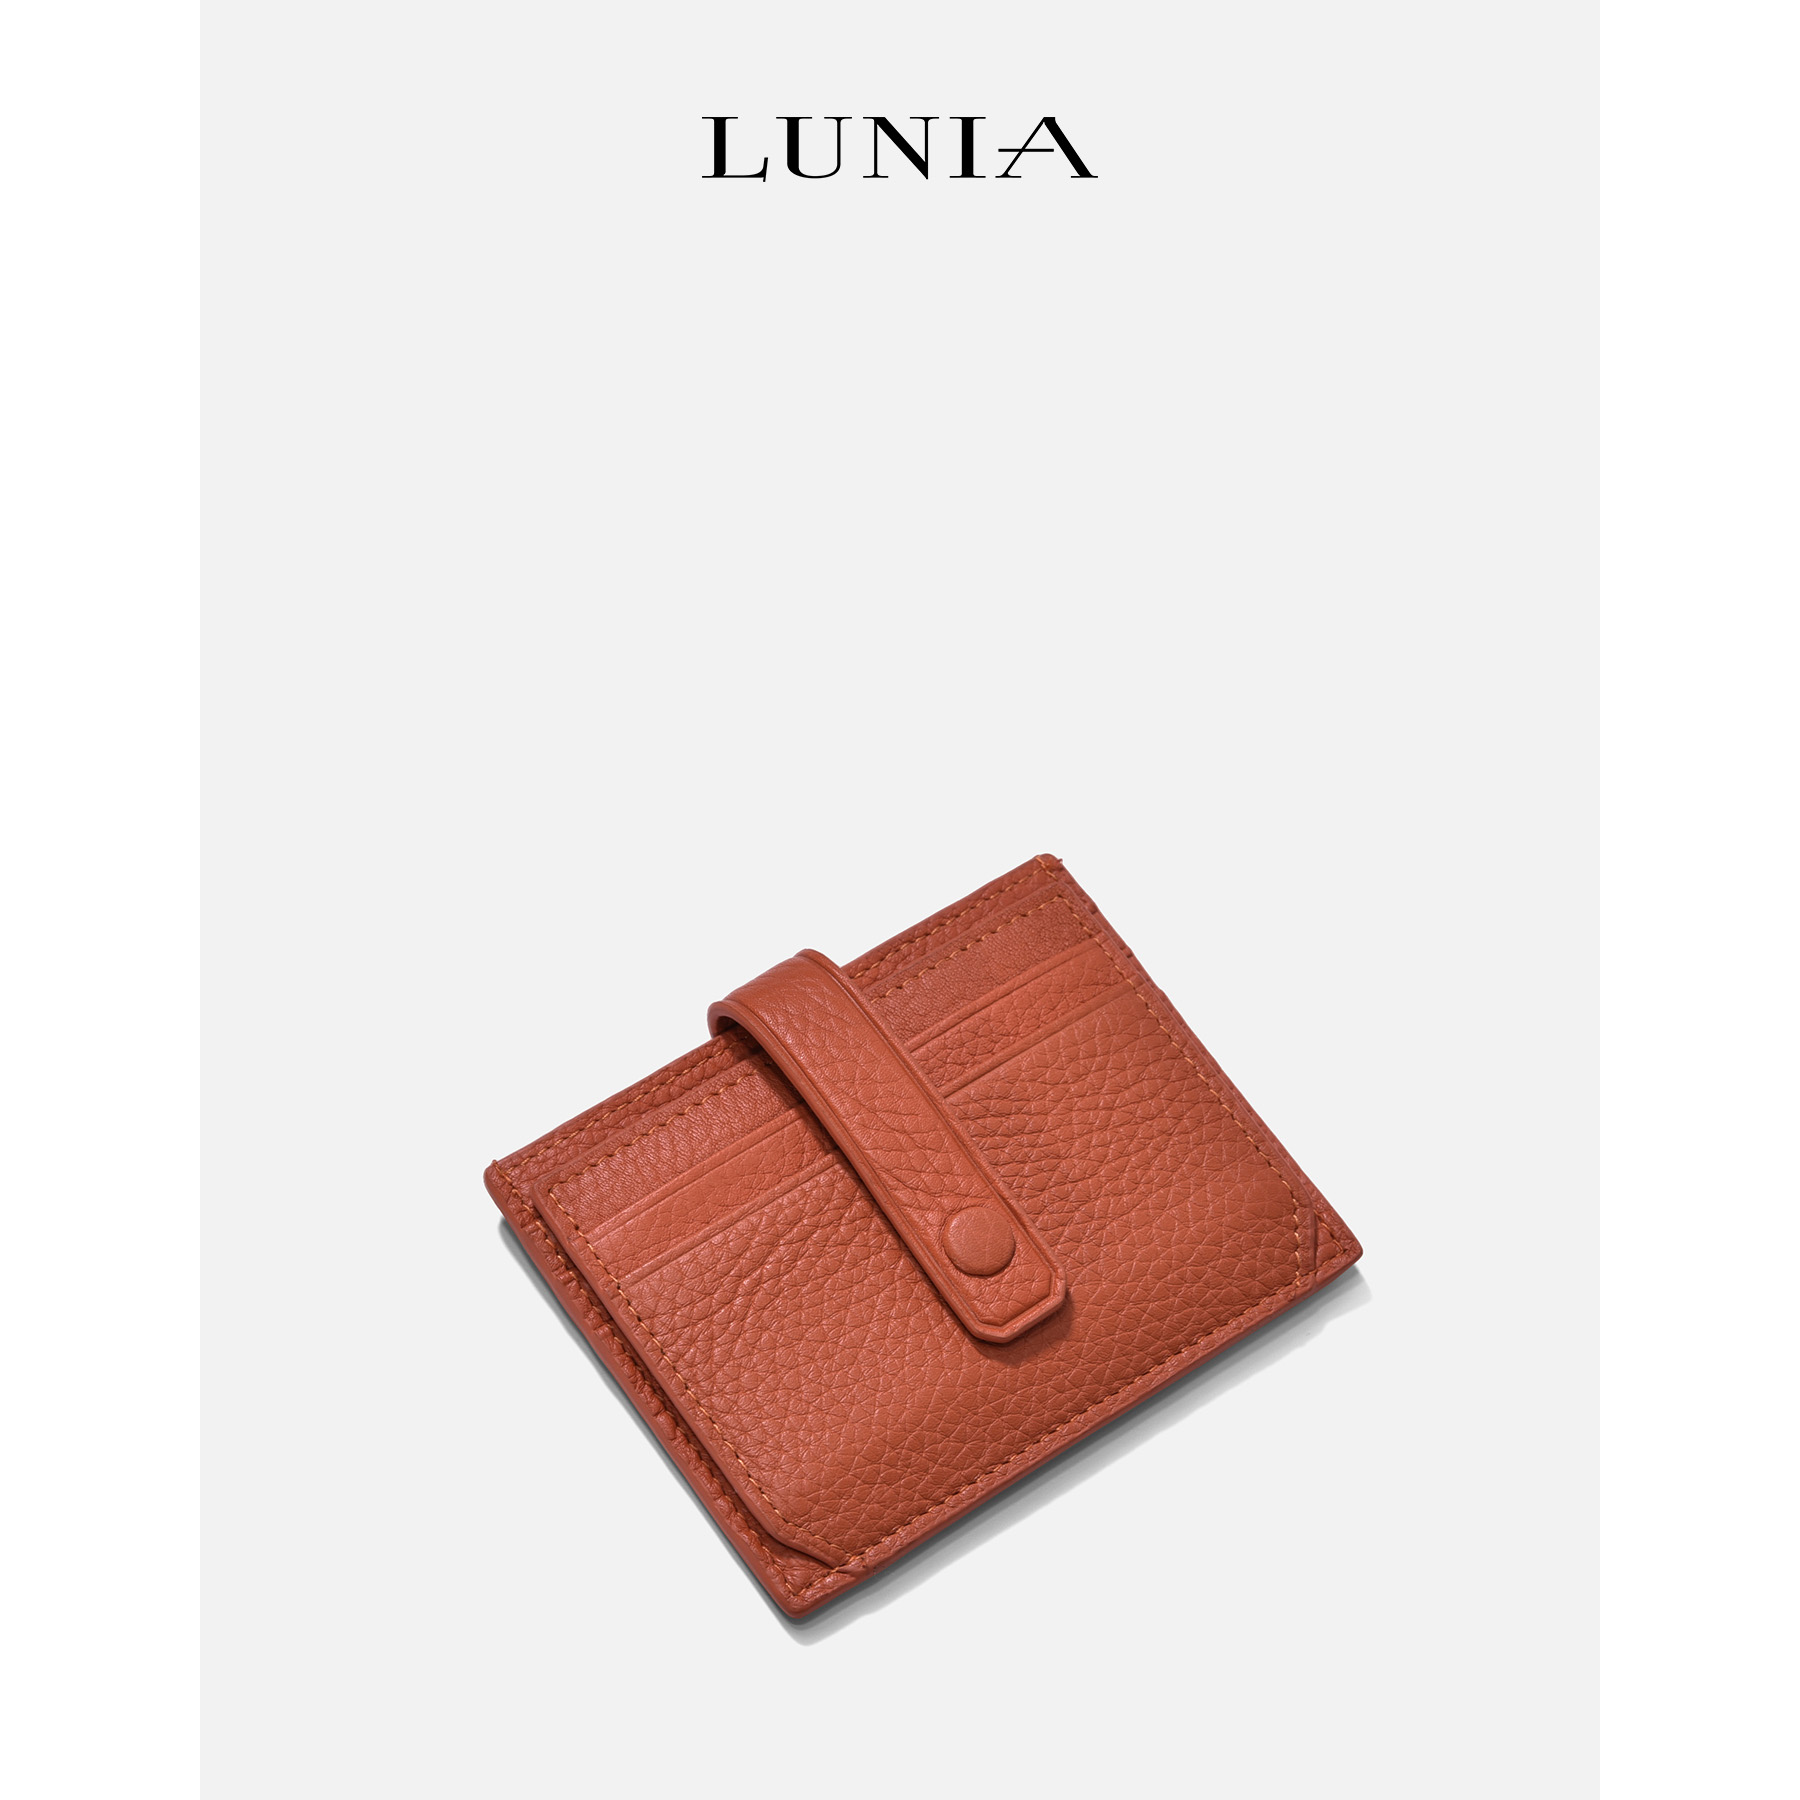 Luna leather ultra thin card bag women's South Korea multi card clip Mini Leather Case driver's license simple small certificate bag